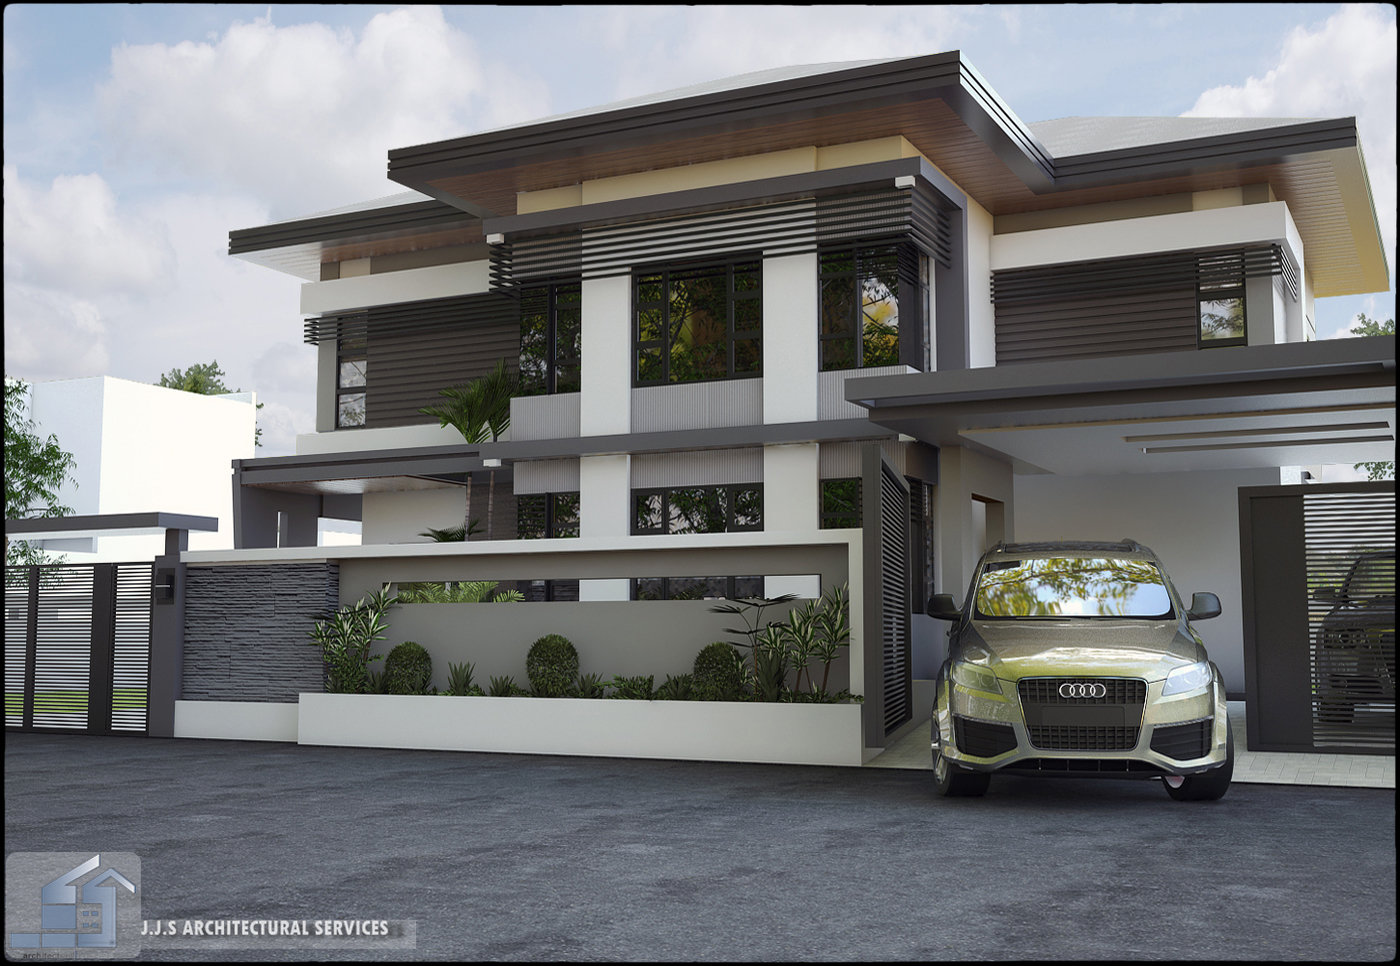 Orani bataan 2 storey residential house by j j s for Two storey residential house design